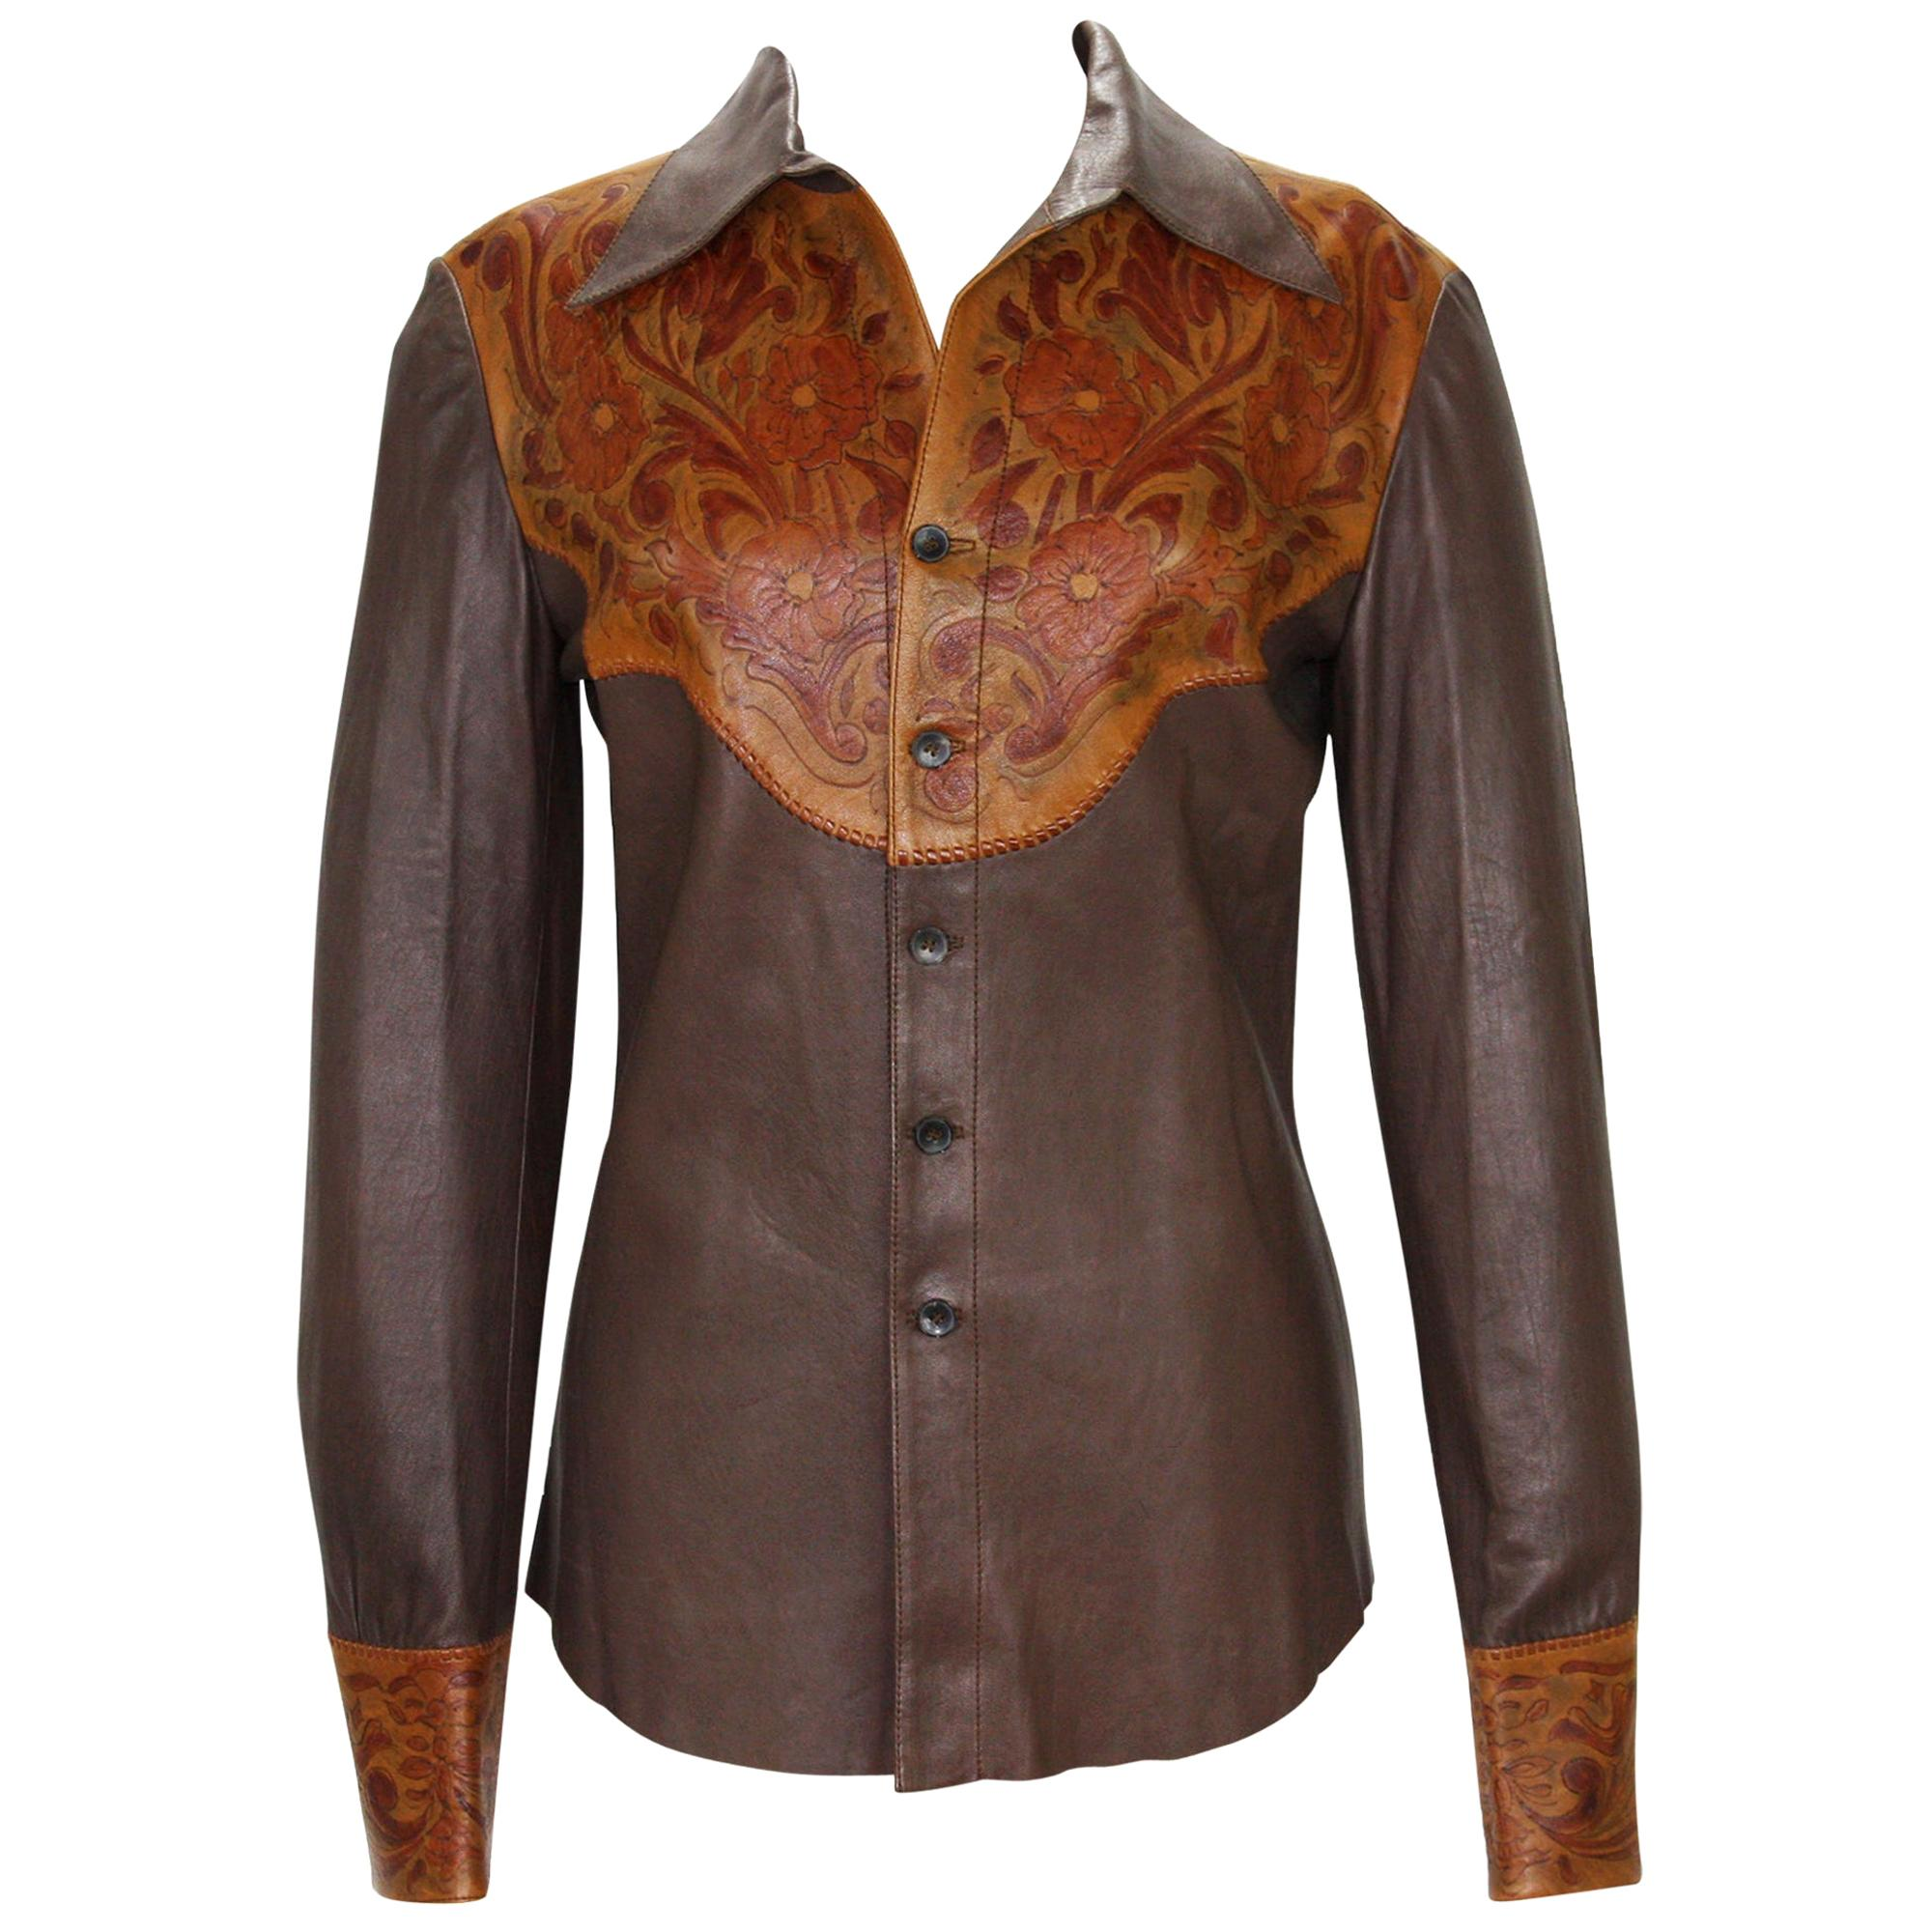 New Tom Ford for Gucci Runway S/S 2004 Collection Western Leather Men's Shirt 48